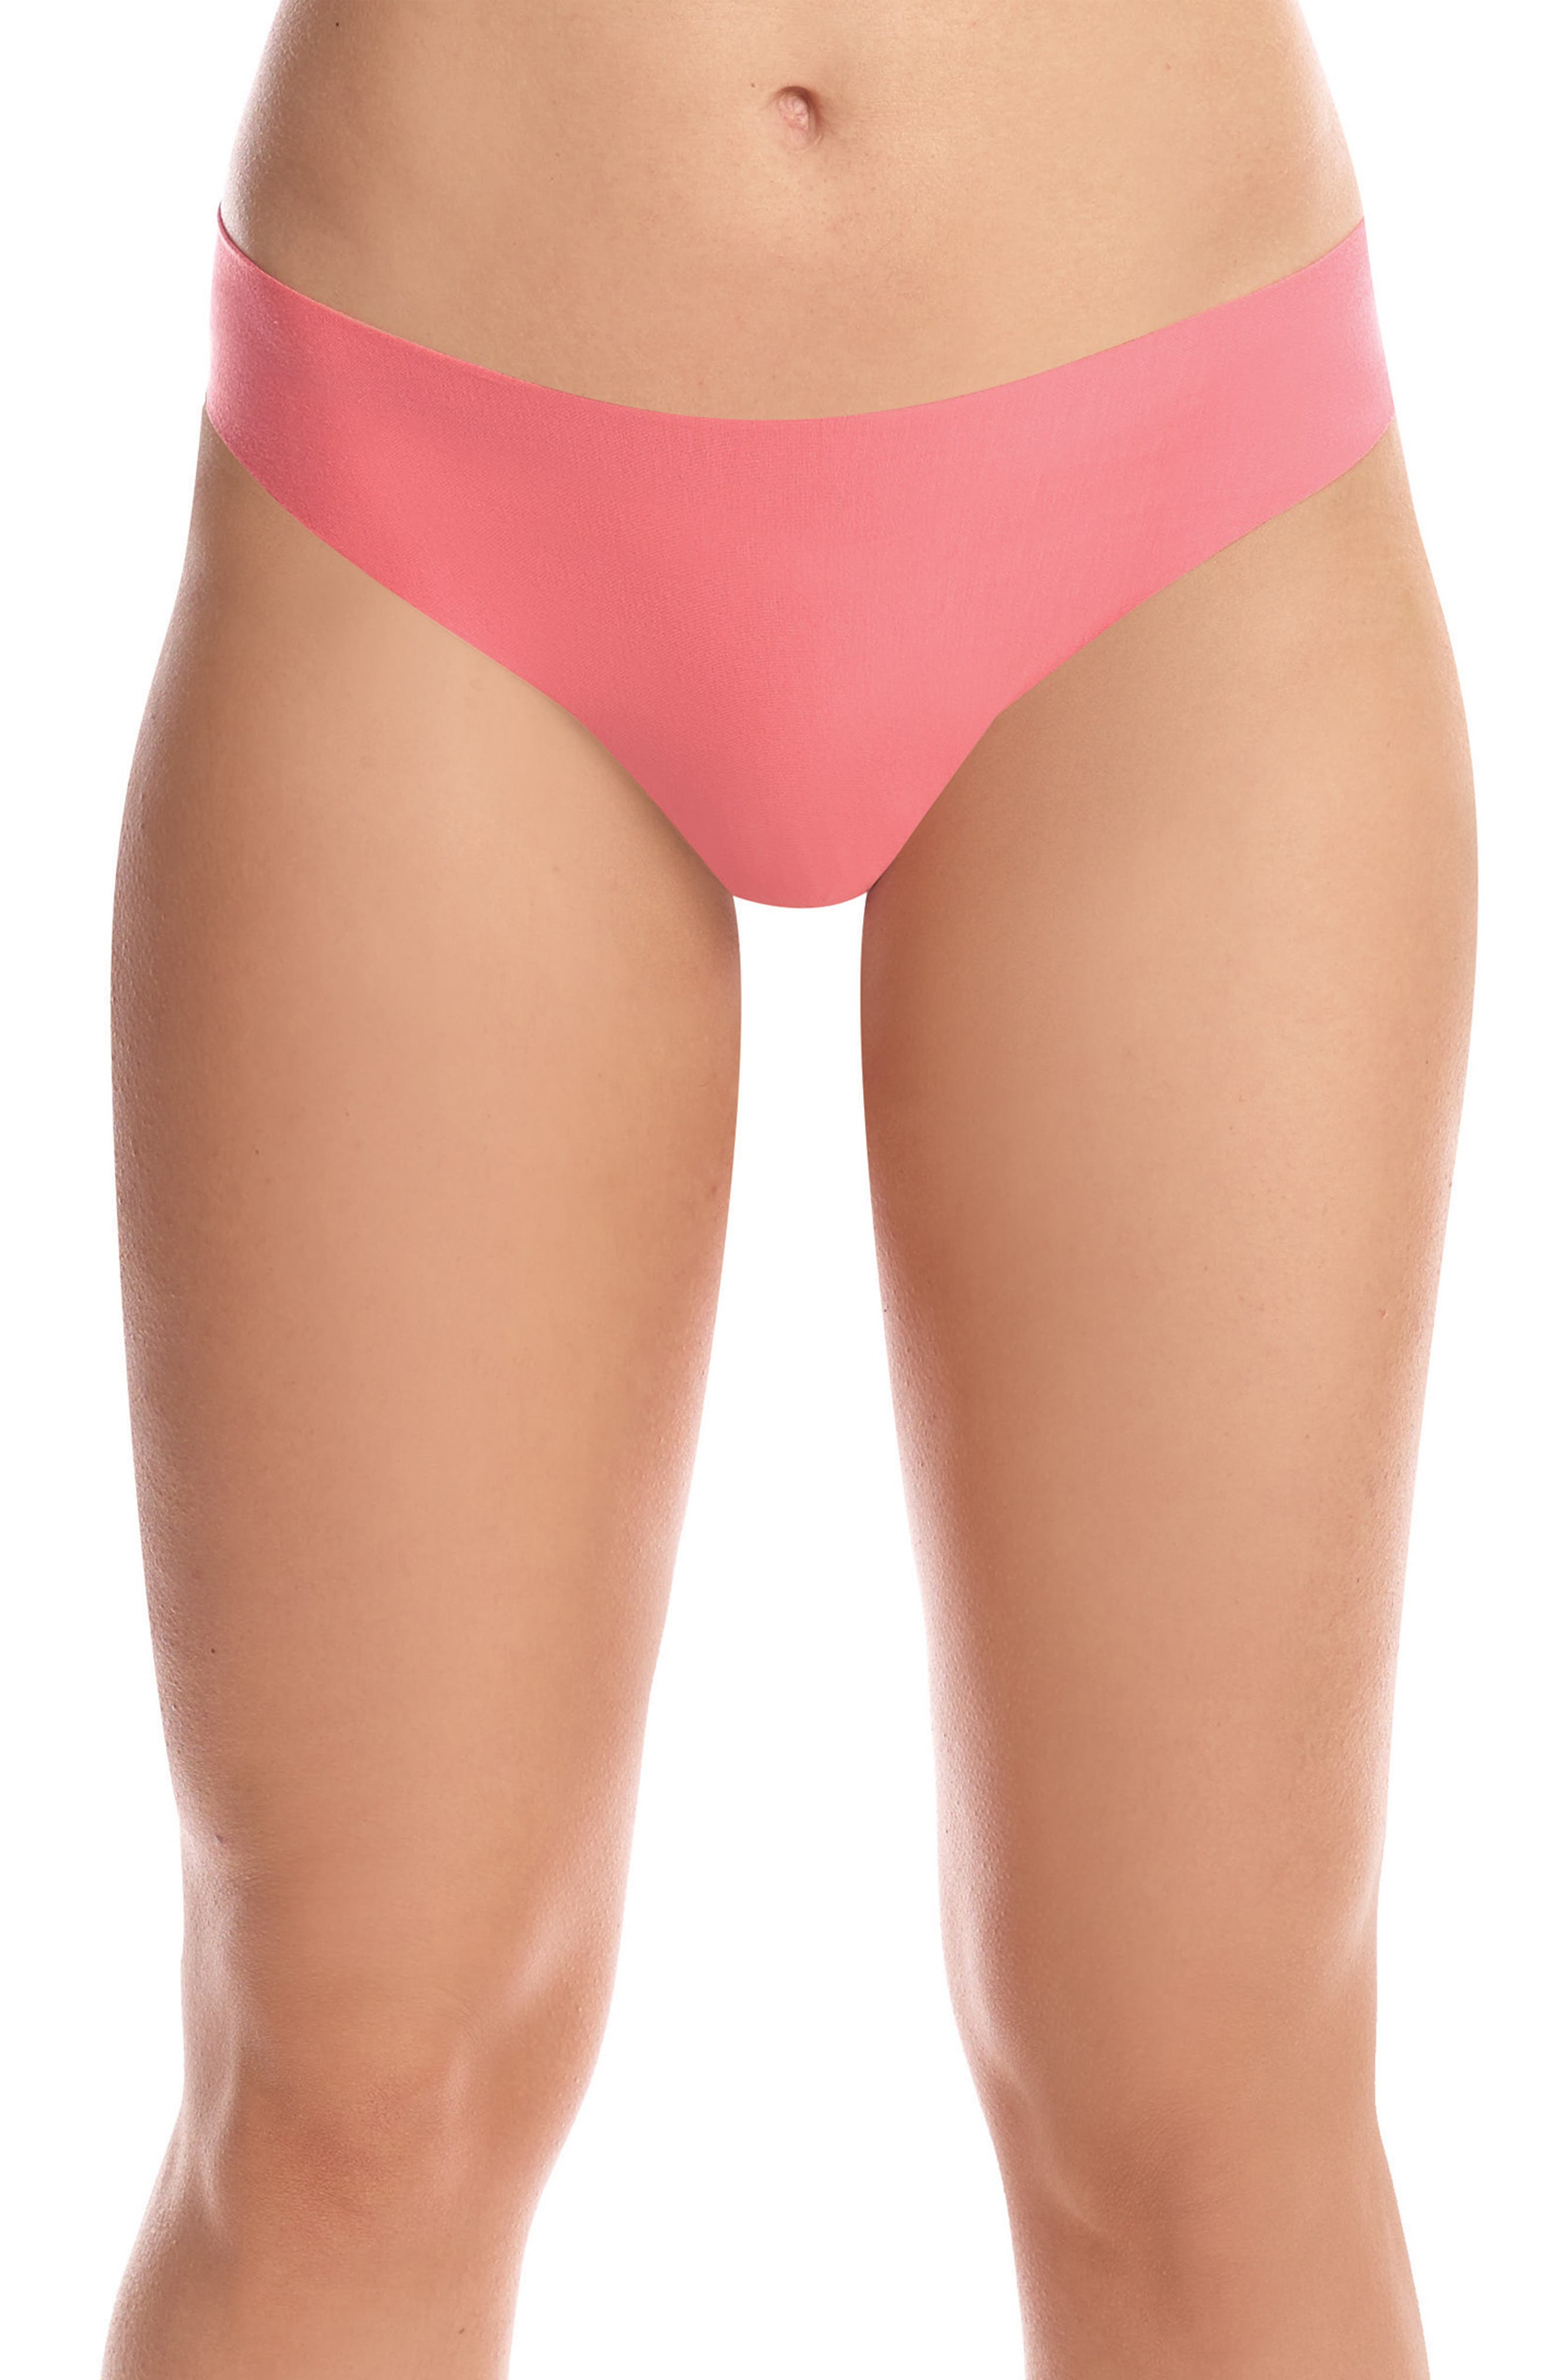 'Butter' Stretch Modal Thong,                             Main thumbnail 1, color,                             Coral